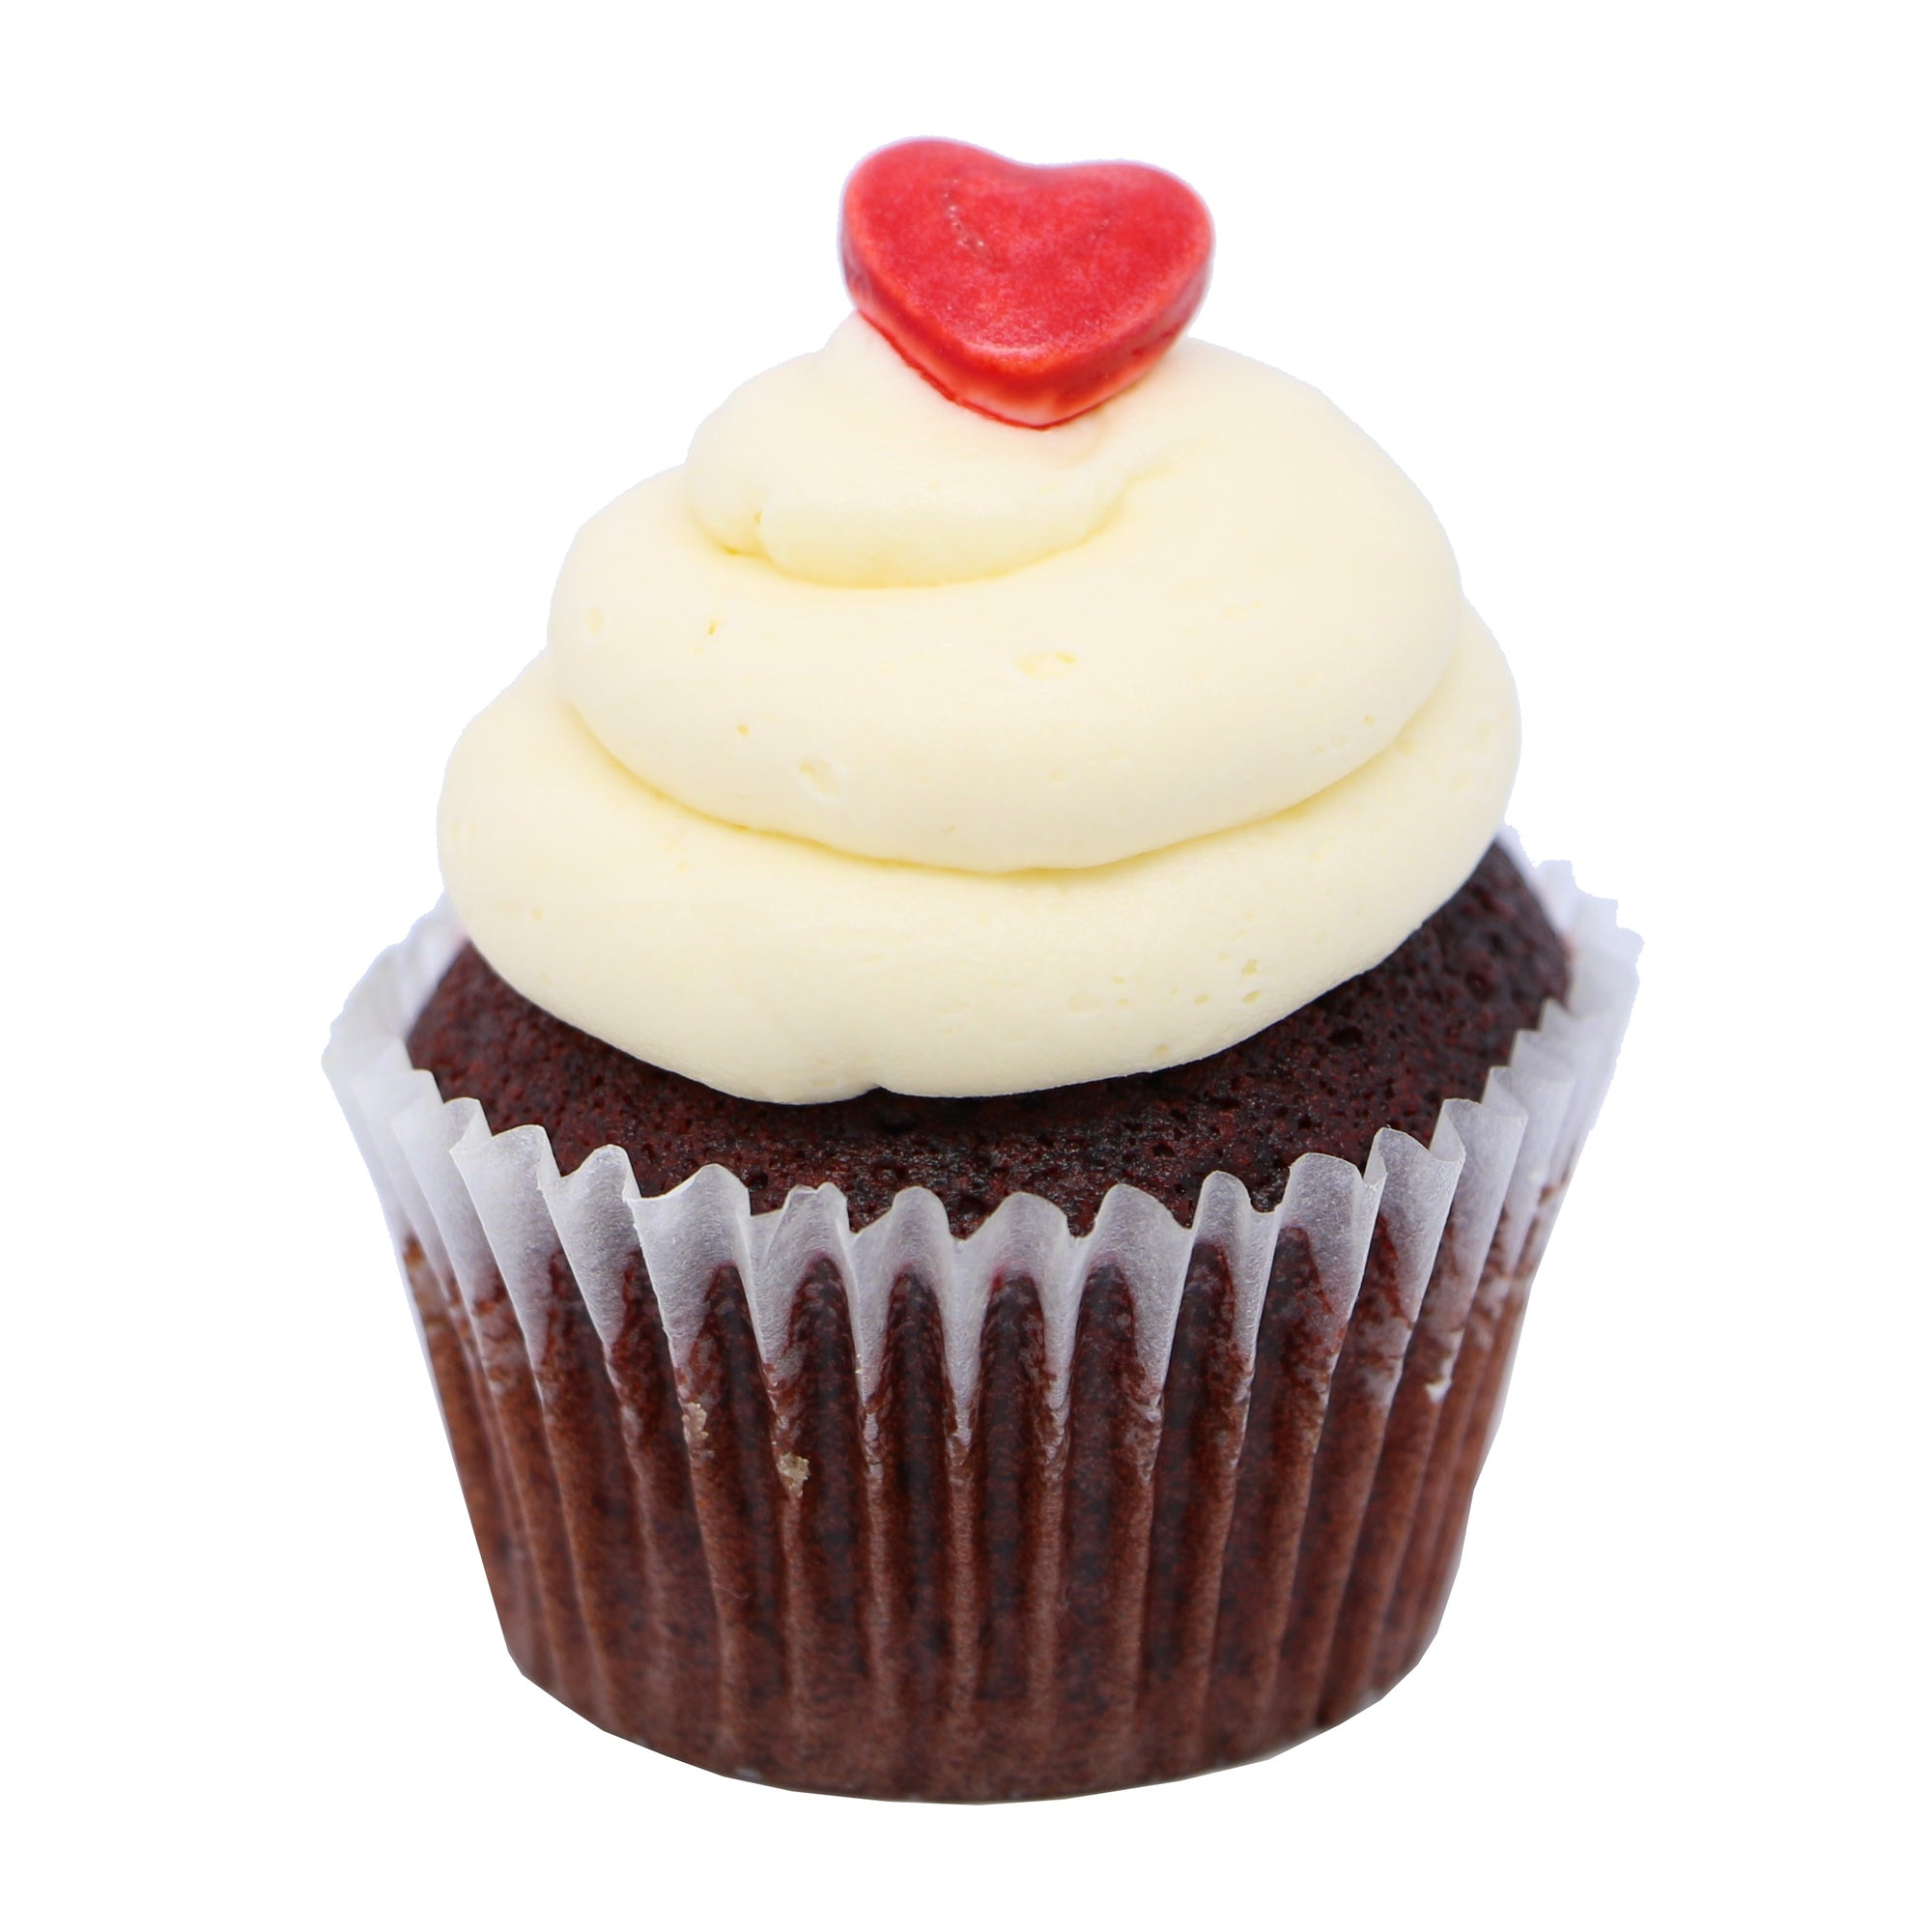 Mini Cupcake - Red Velvet - Treats2eat - Wedding & Birthday Party Dessert Catering Near Me